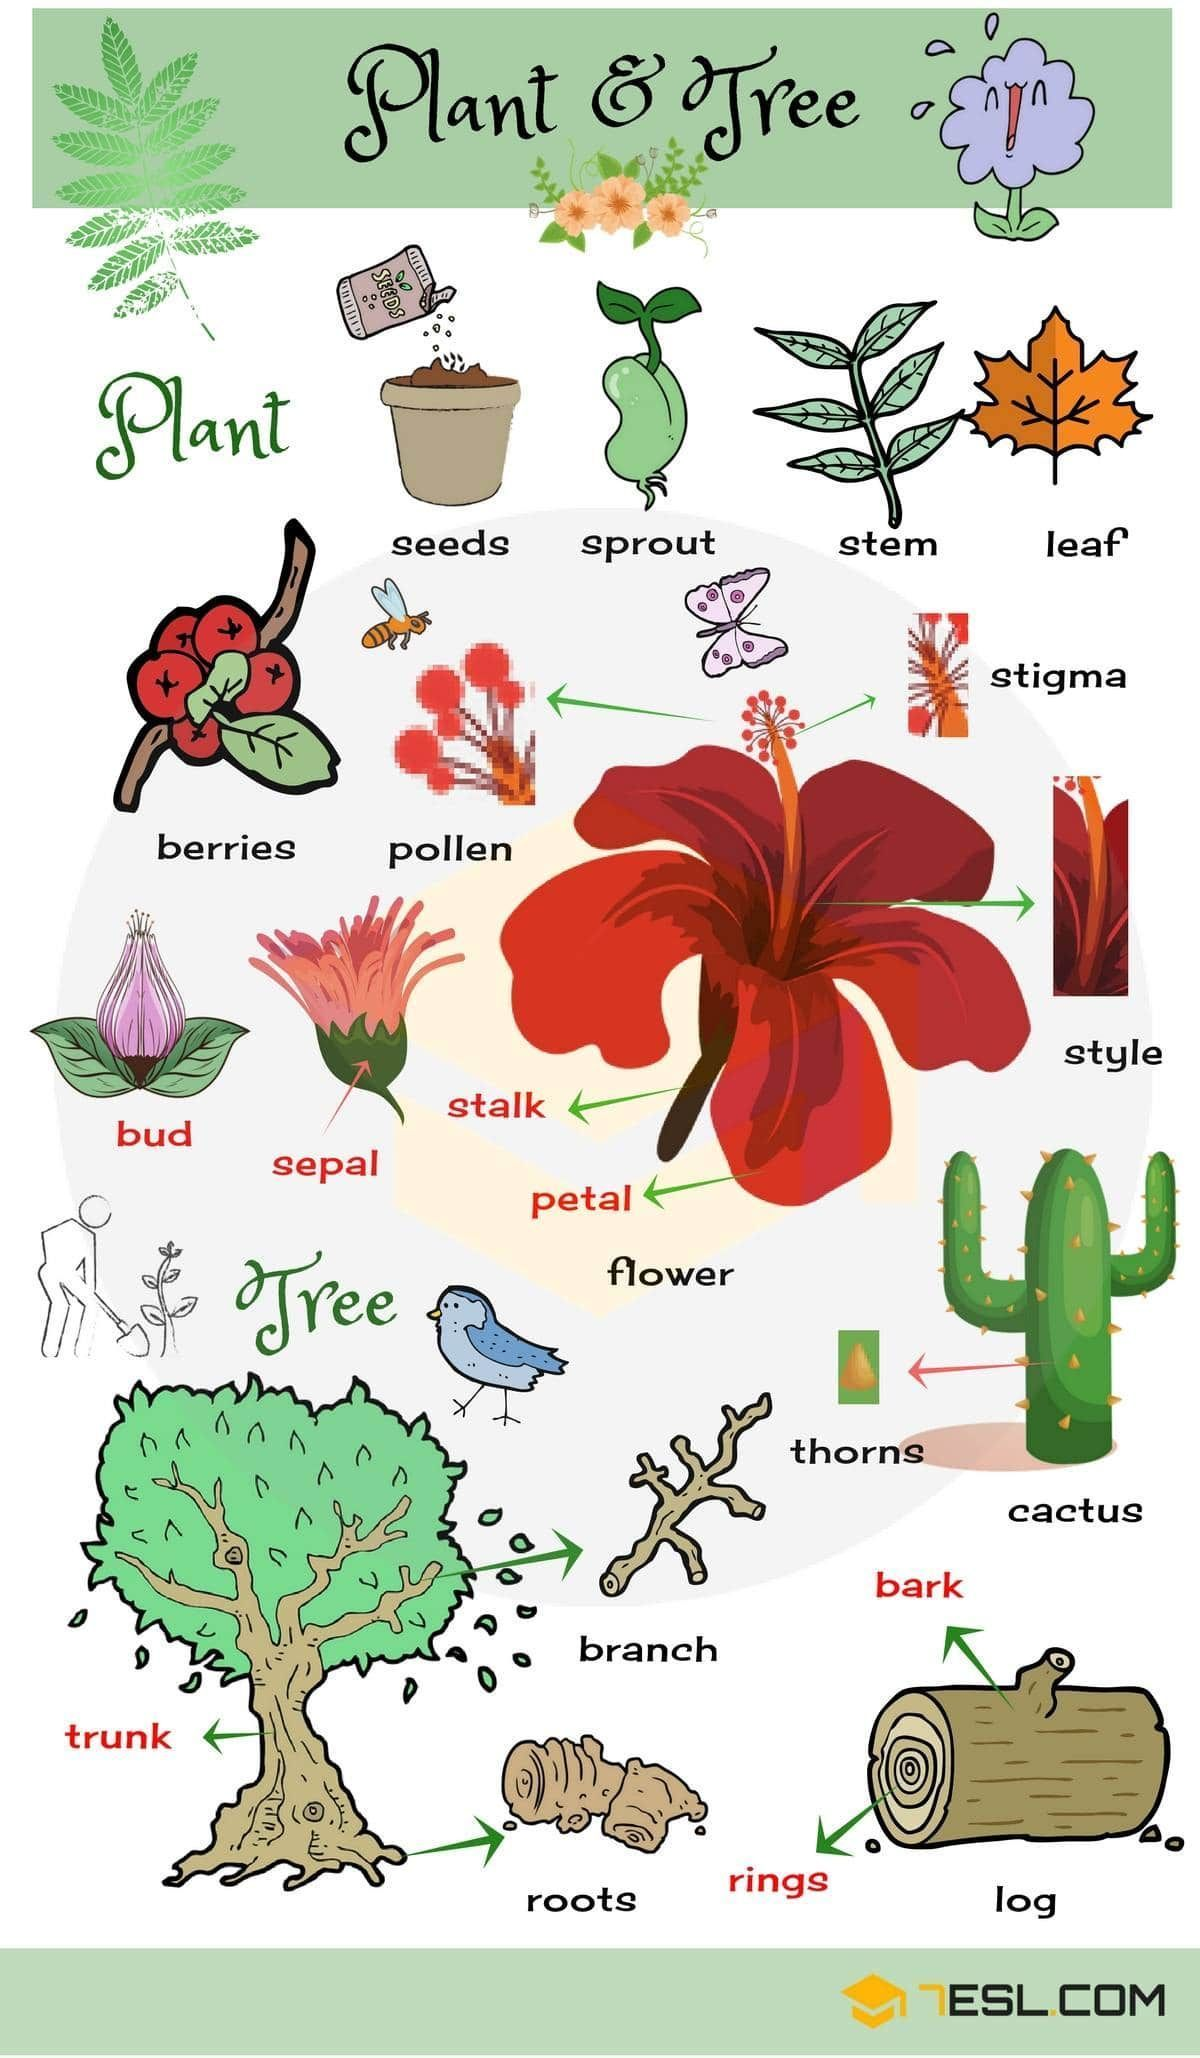 List Of Plant And Flower Names Spring Flowers Pinterest Plants